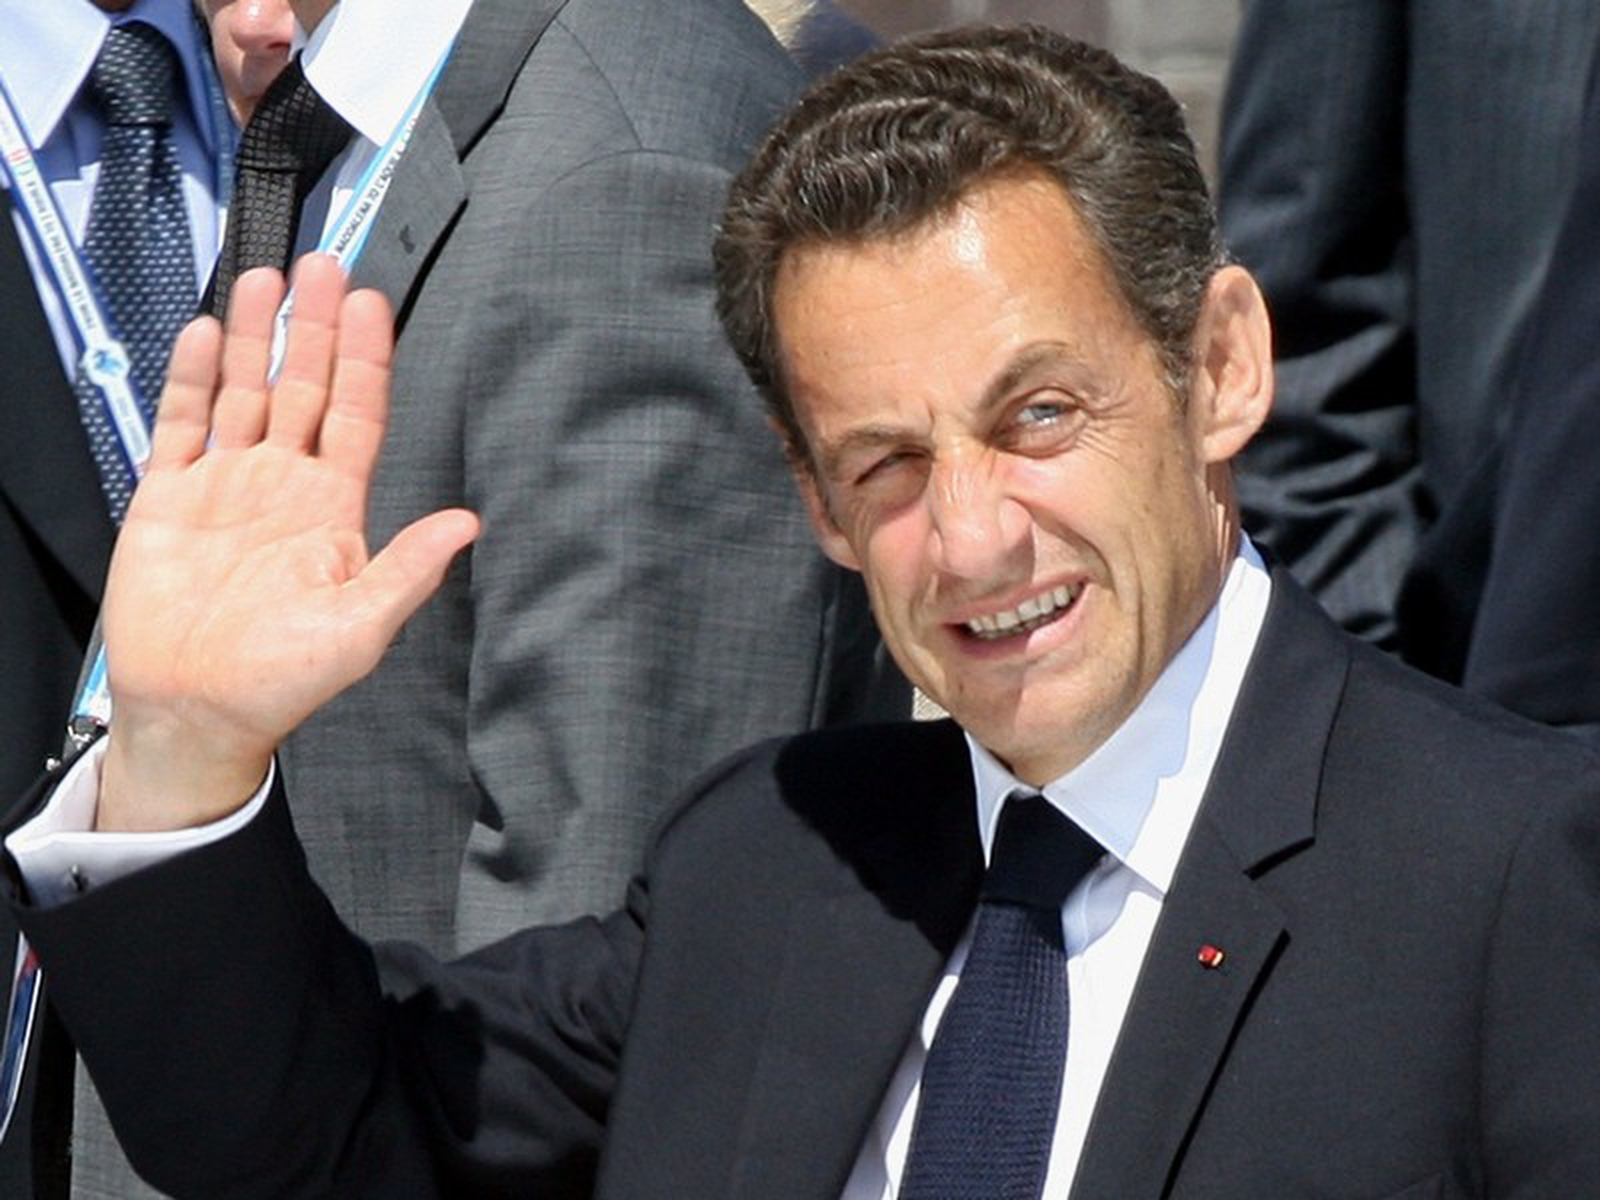 Sarkozy recovering after collapse